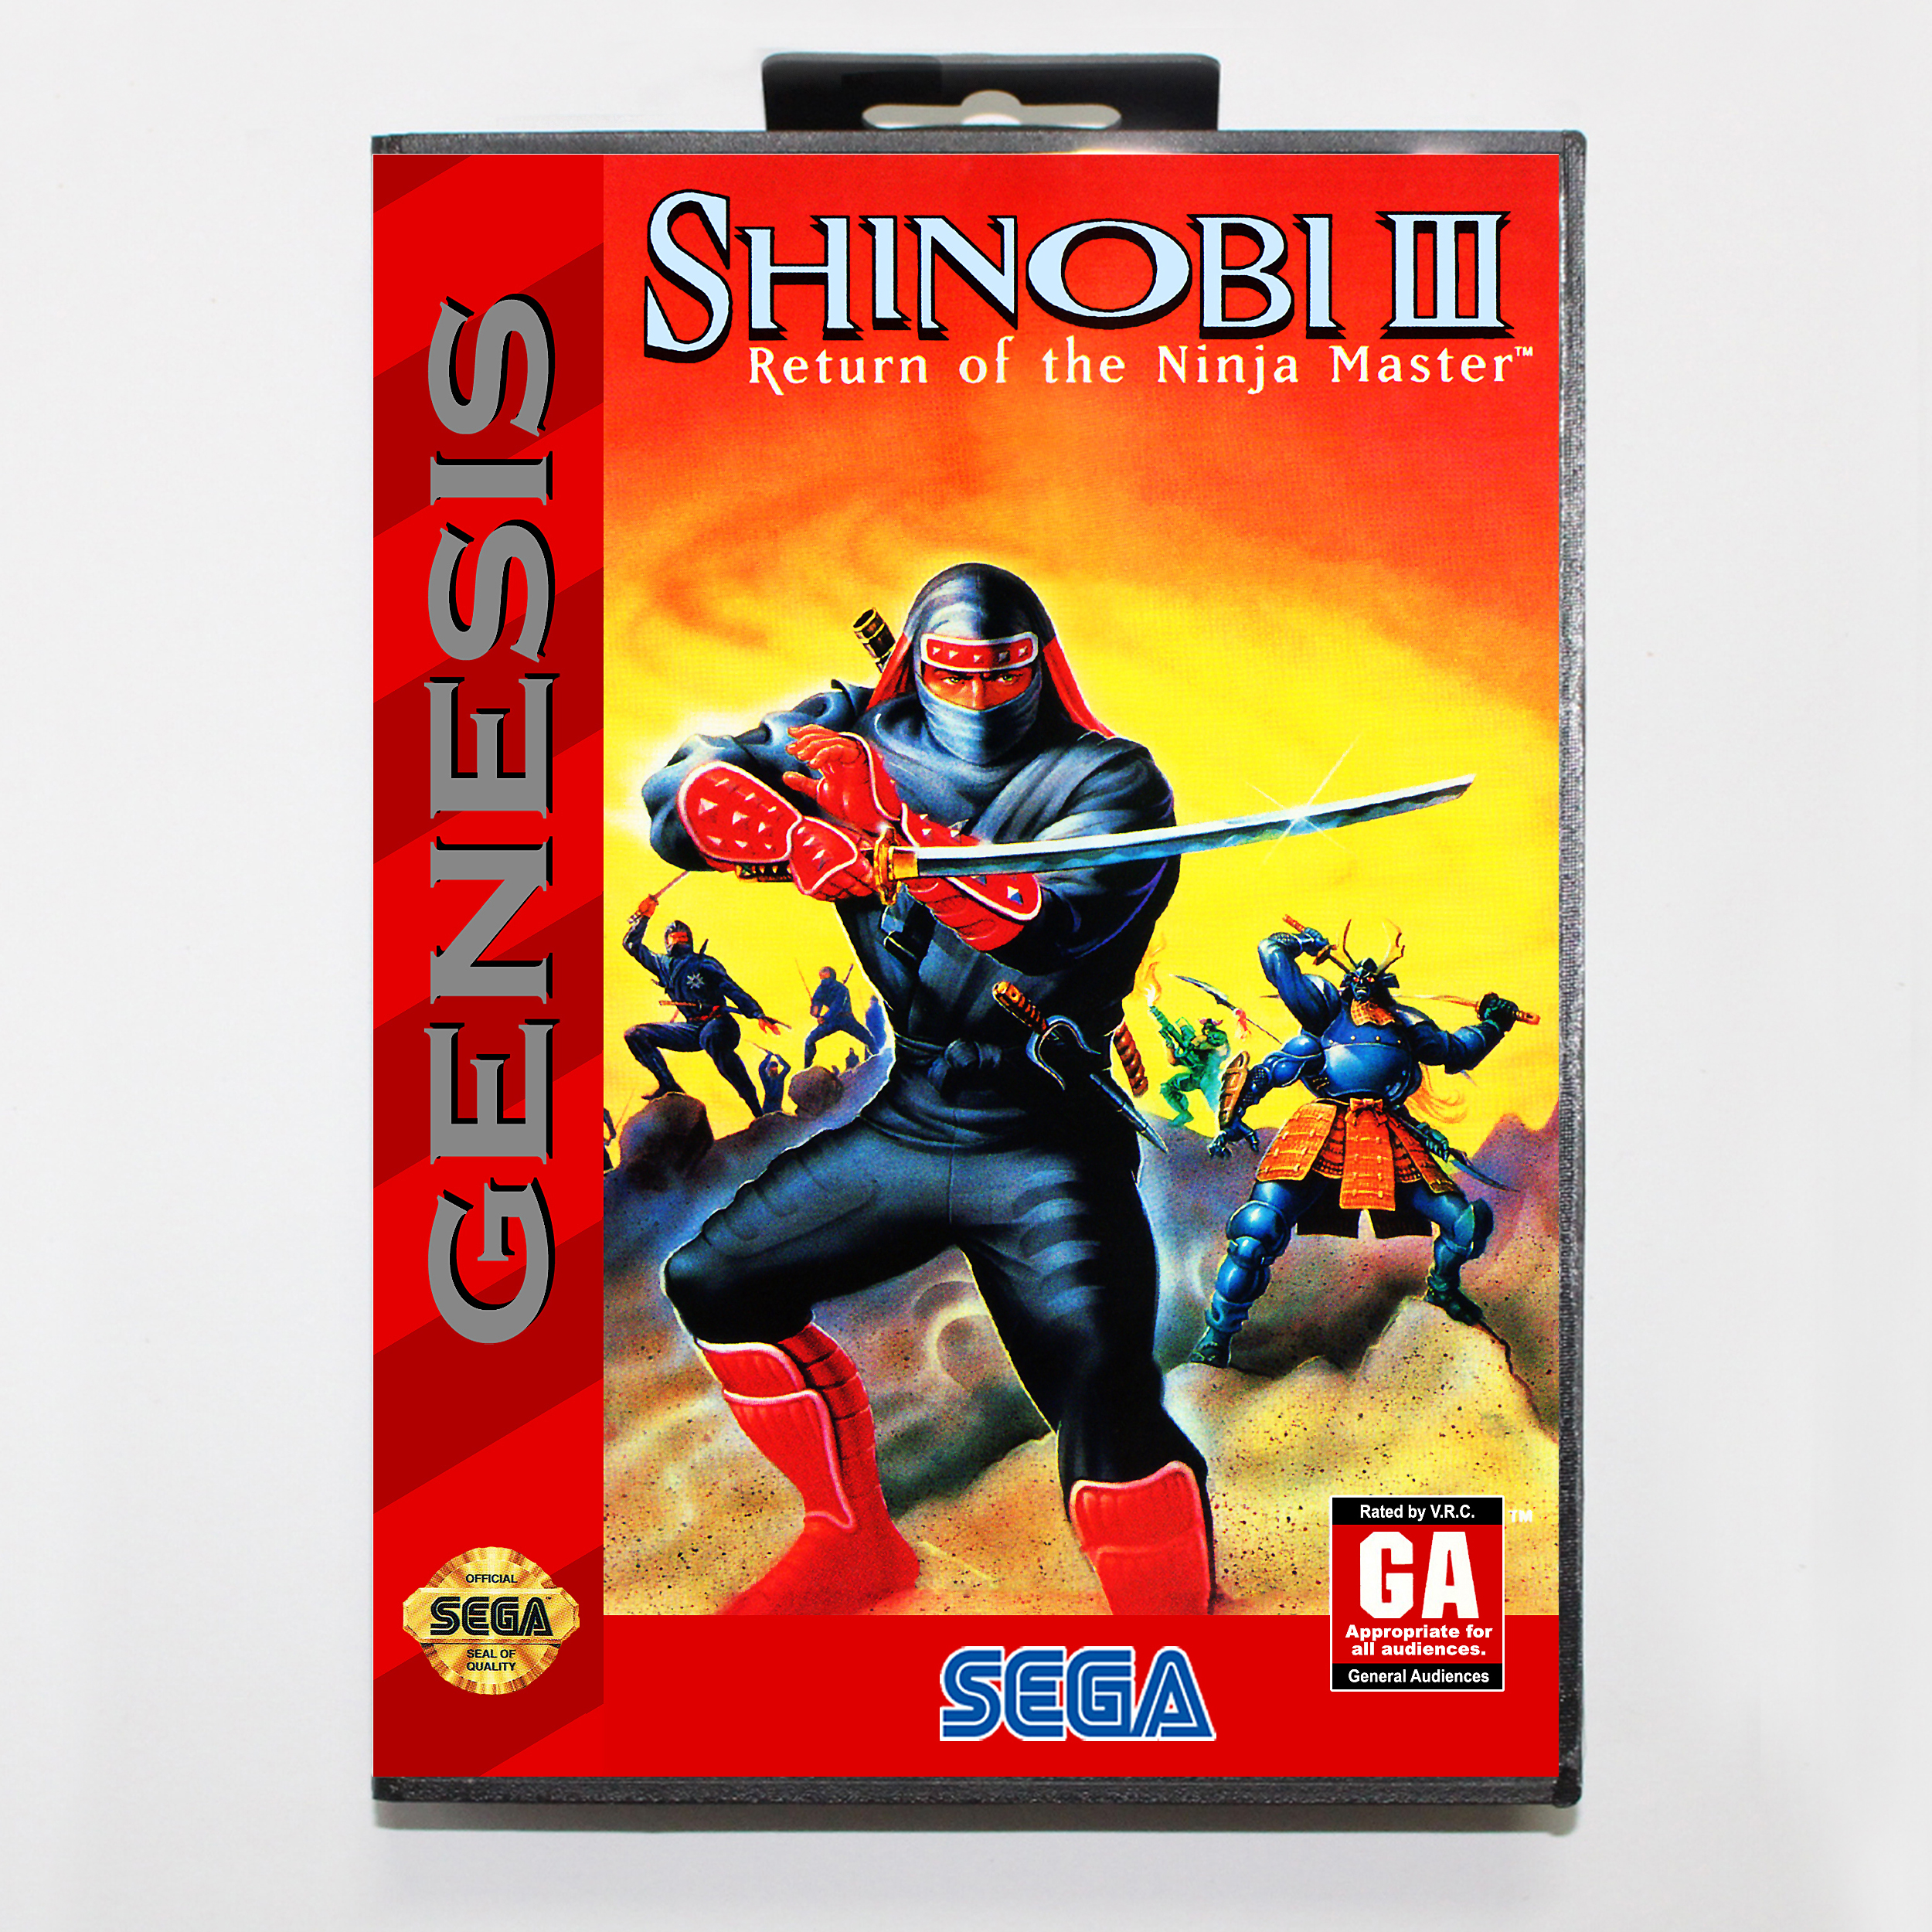 Shinobi III Return of the Ninja Master Boxed Version 16bit MD Game Card For Sega MegaDrive Sega Genesis System image